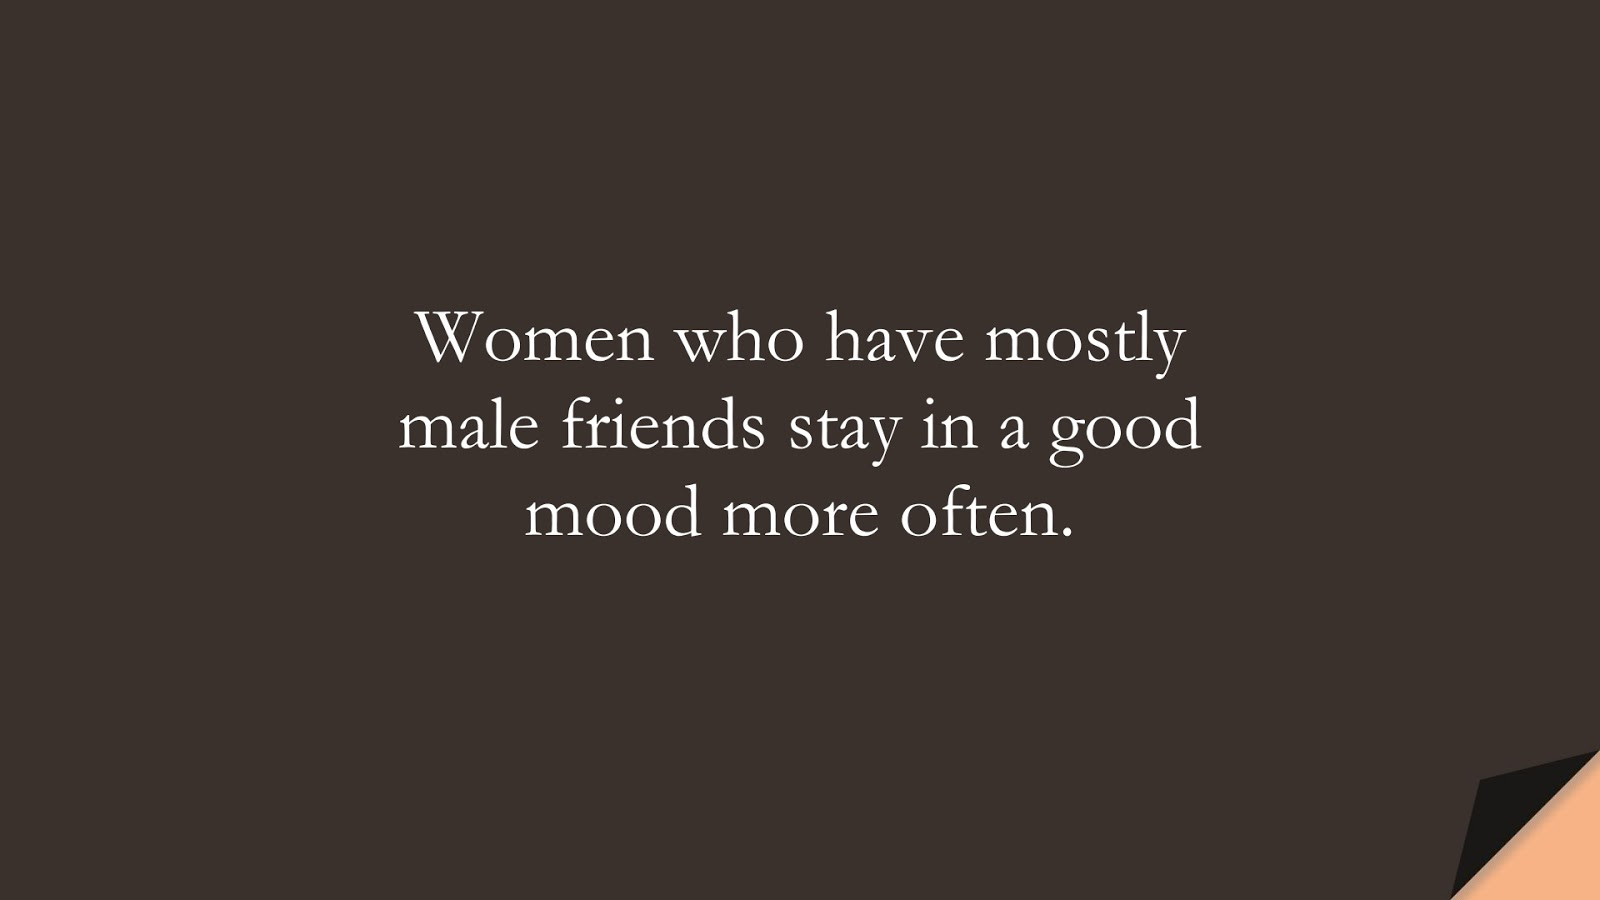 Women who have mostly male friends stay in a good mood more often.FALSE